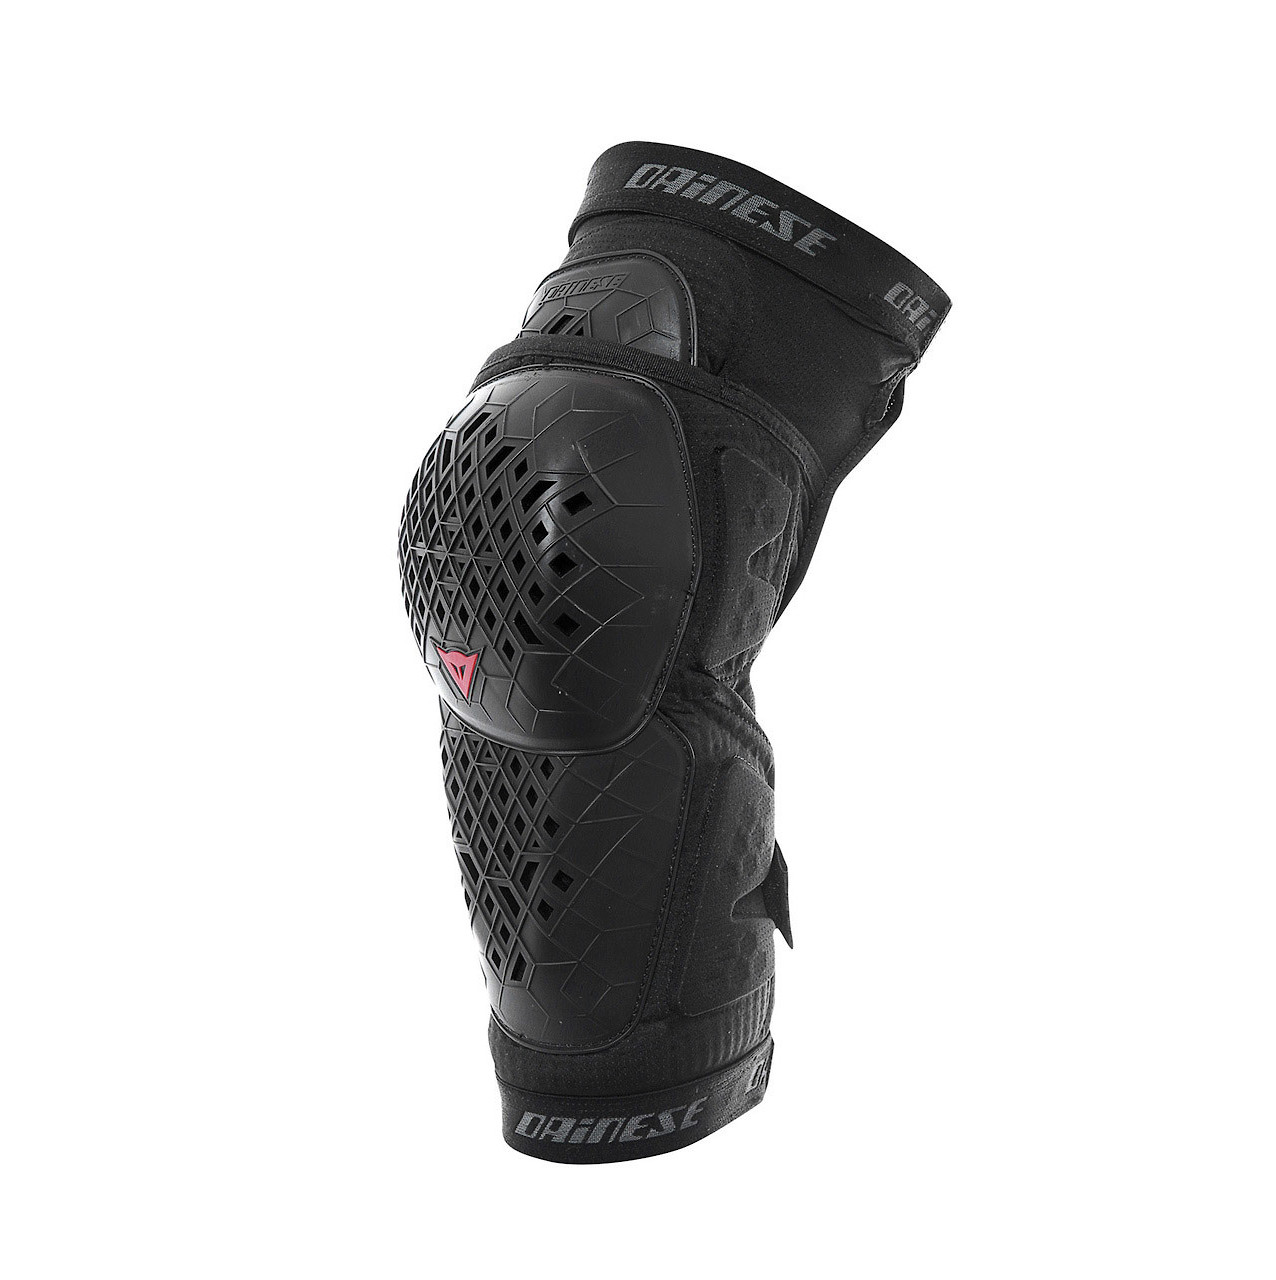 Dainese Armorfoam Knee Guard